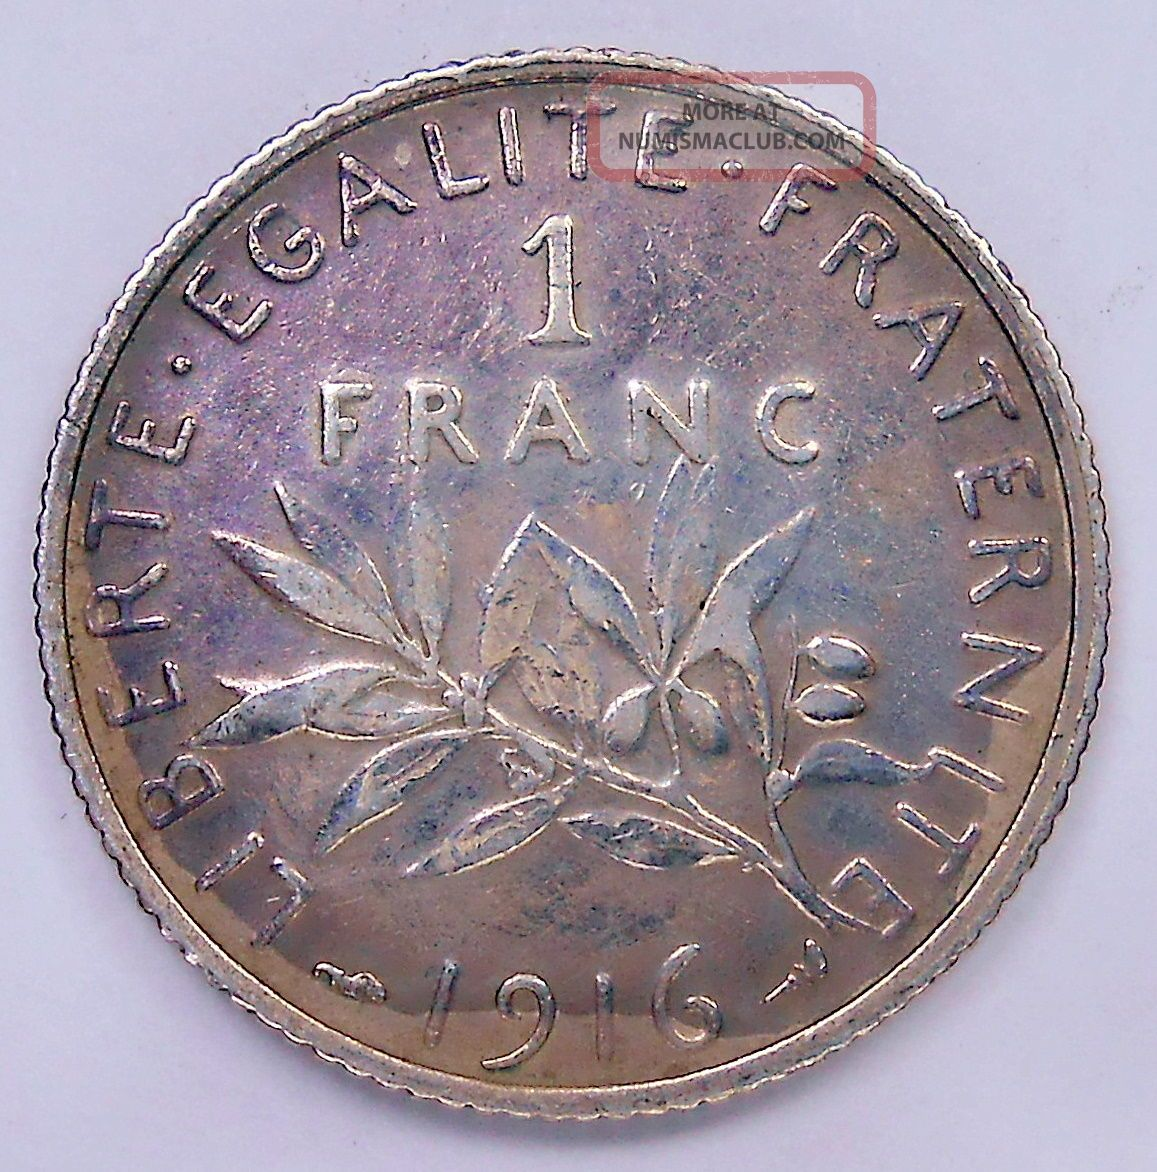 1916 France Franc Vf Classic Wwi Seed Sowing Old French Paris Silver Coin France photo